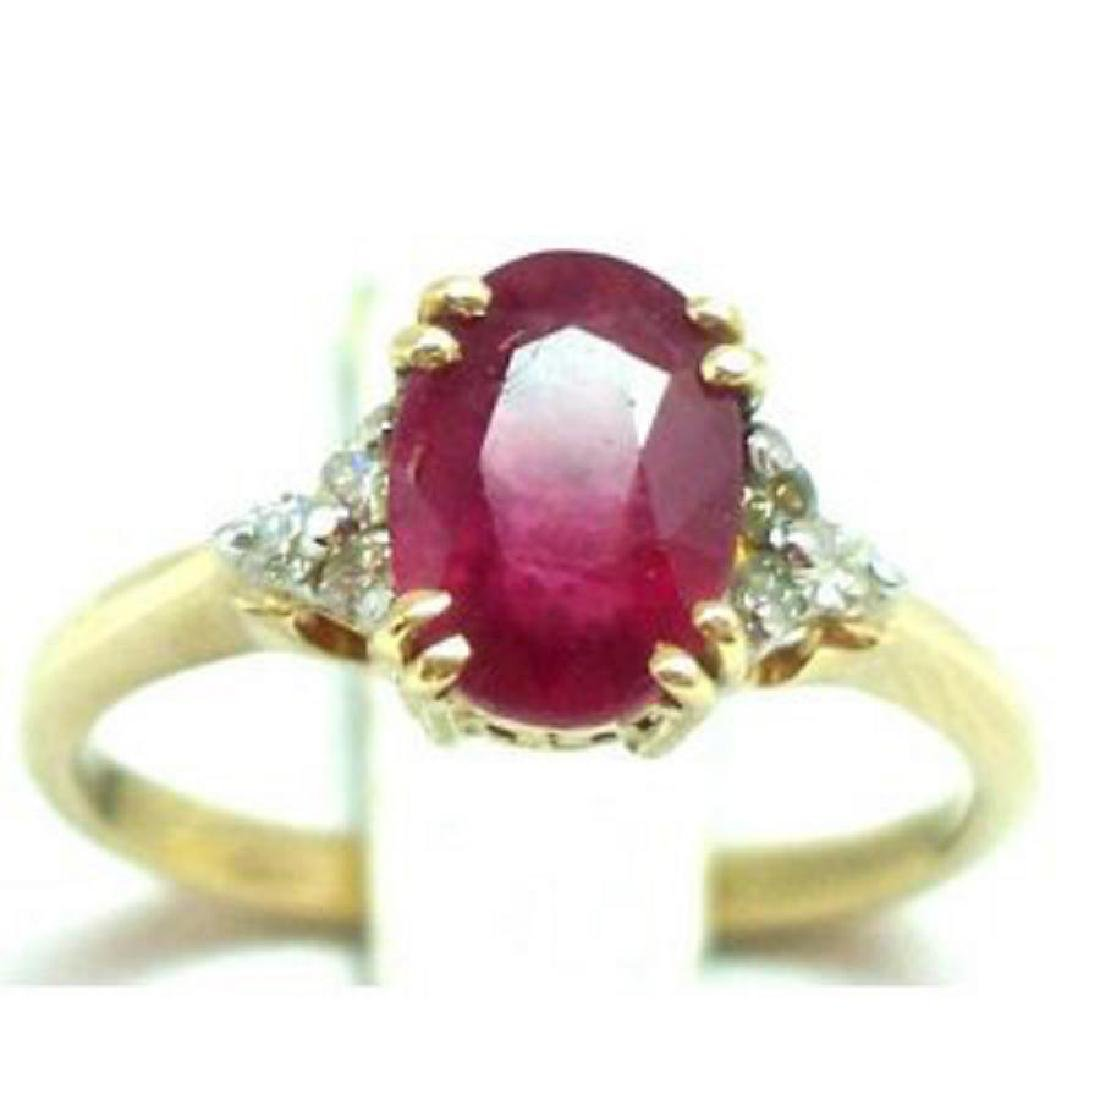 Ruby and Diamond Ring - Appraised at $7,560